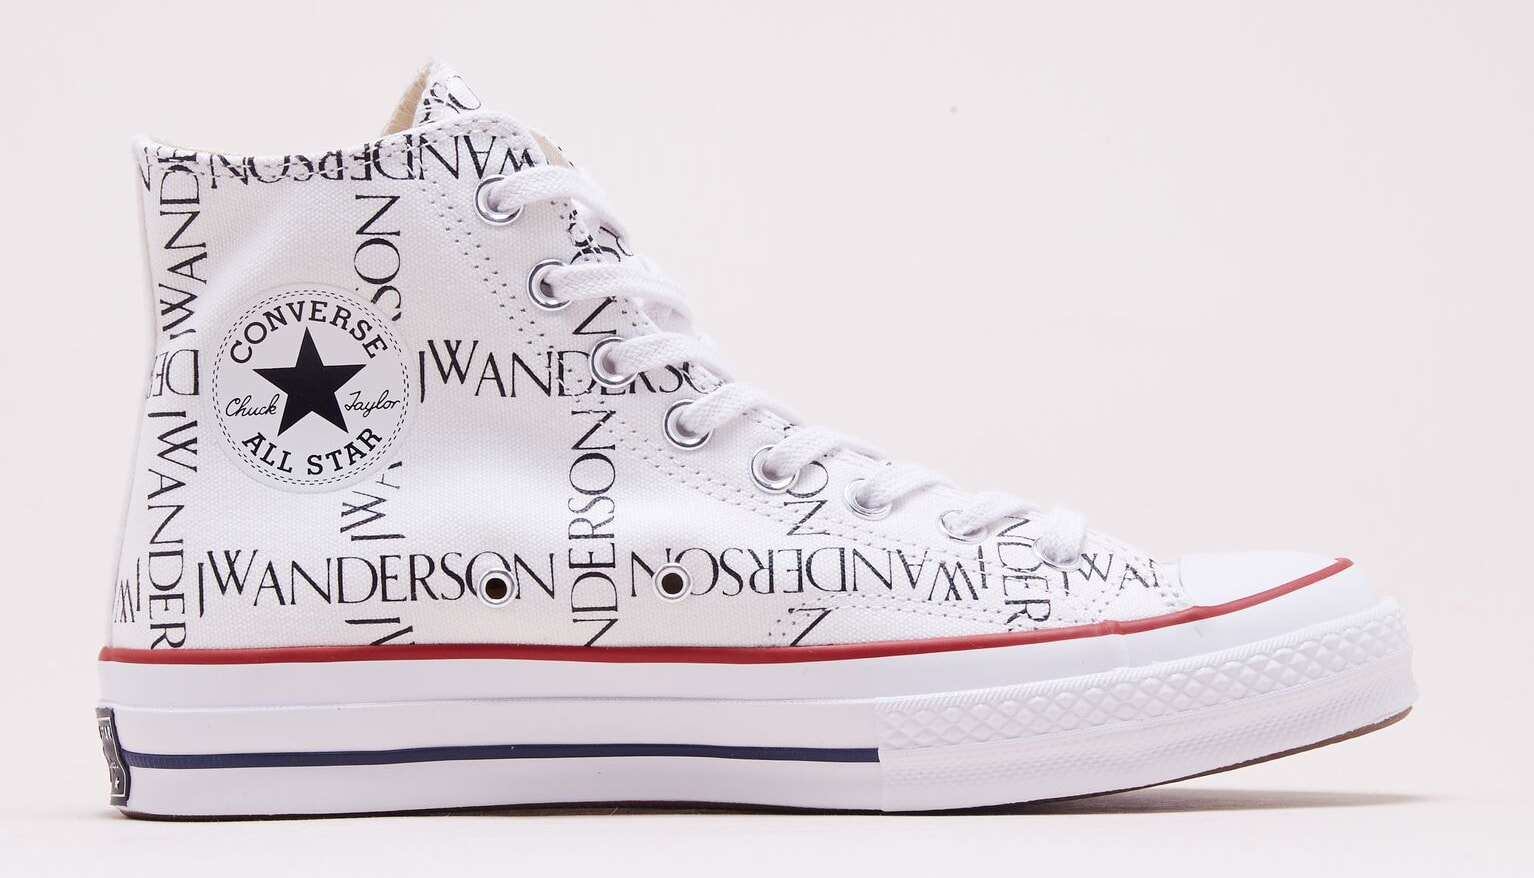 JW Anderson x Converse Chuck Taylor All Star White